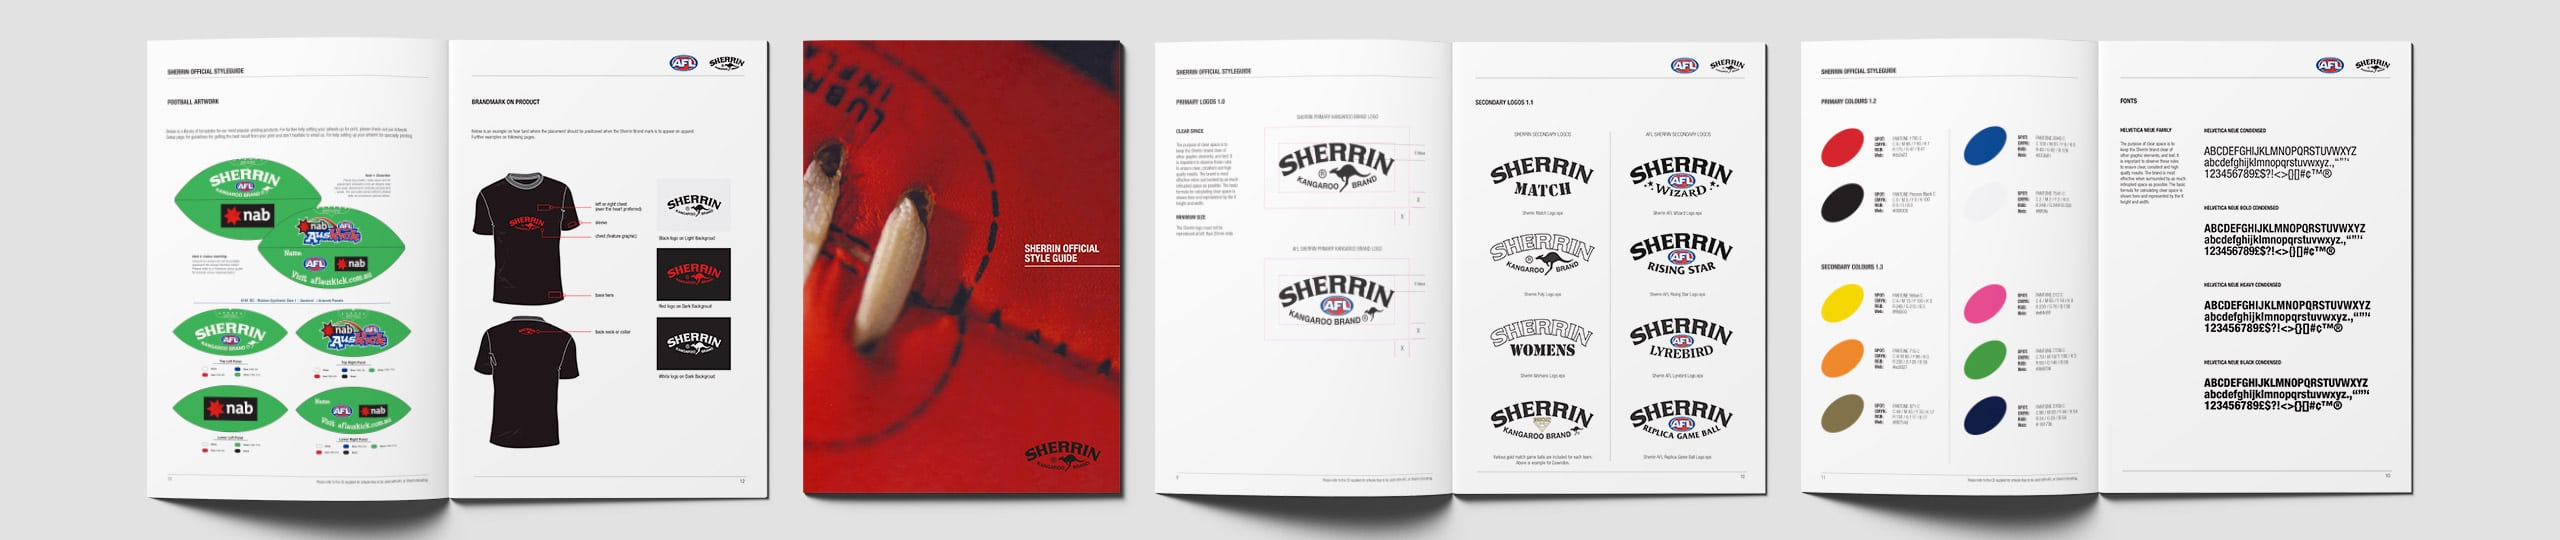 Sherrin Styleguide Brand Strategy Marketing Campaign Brand Design